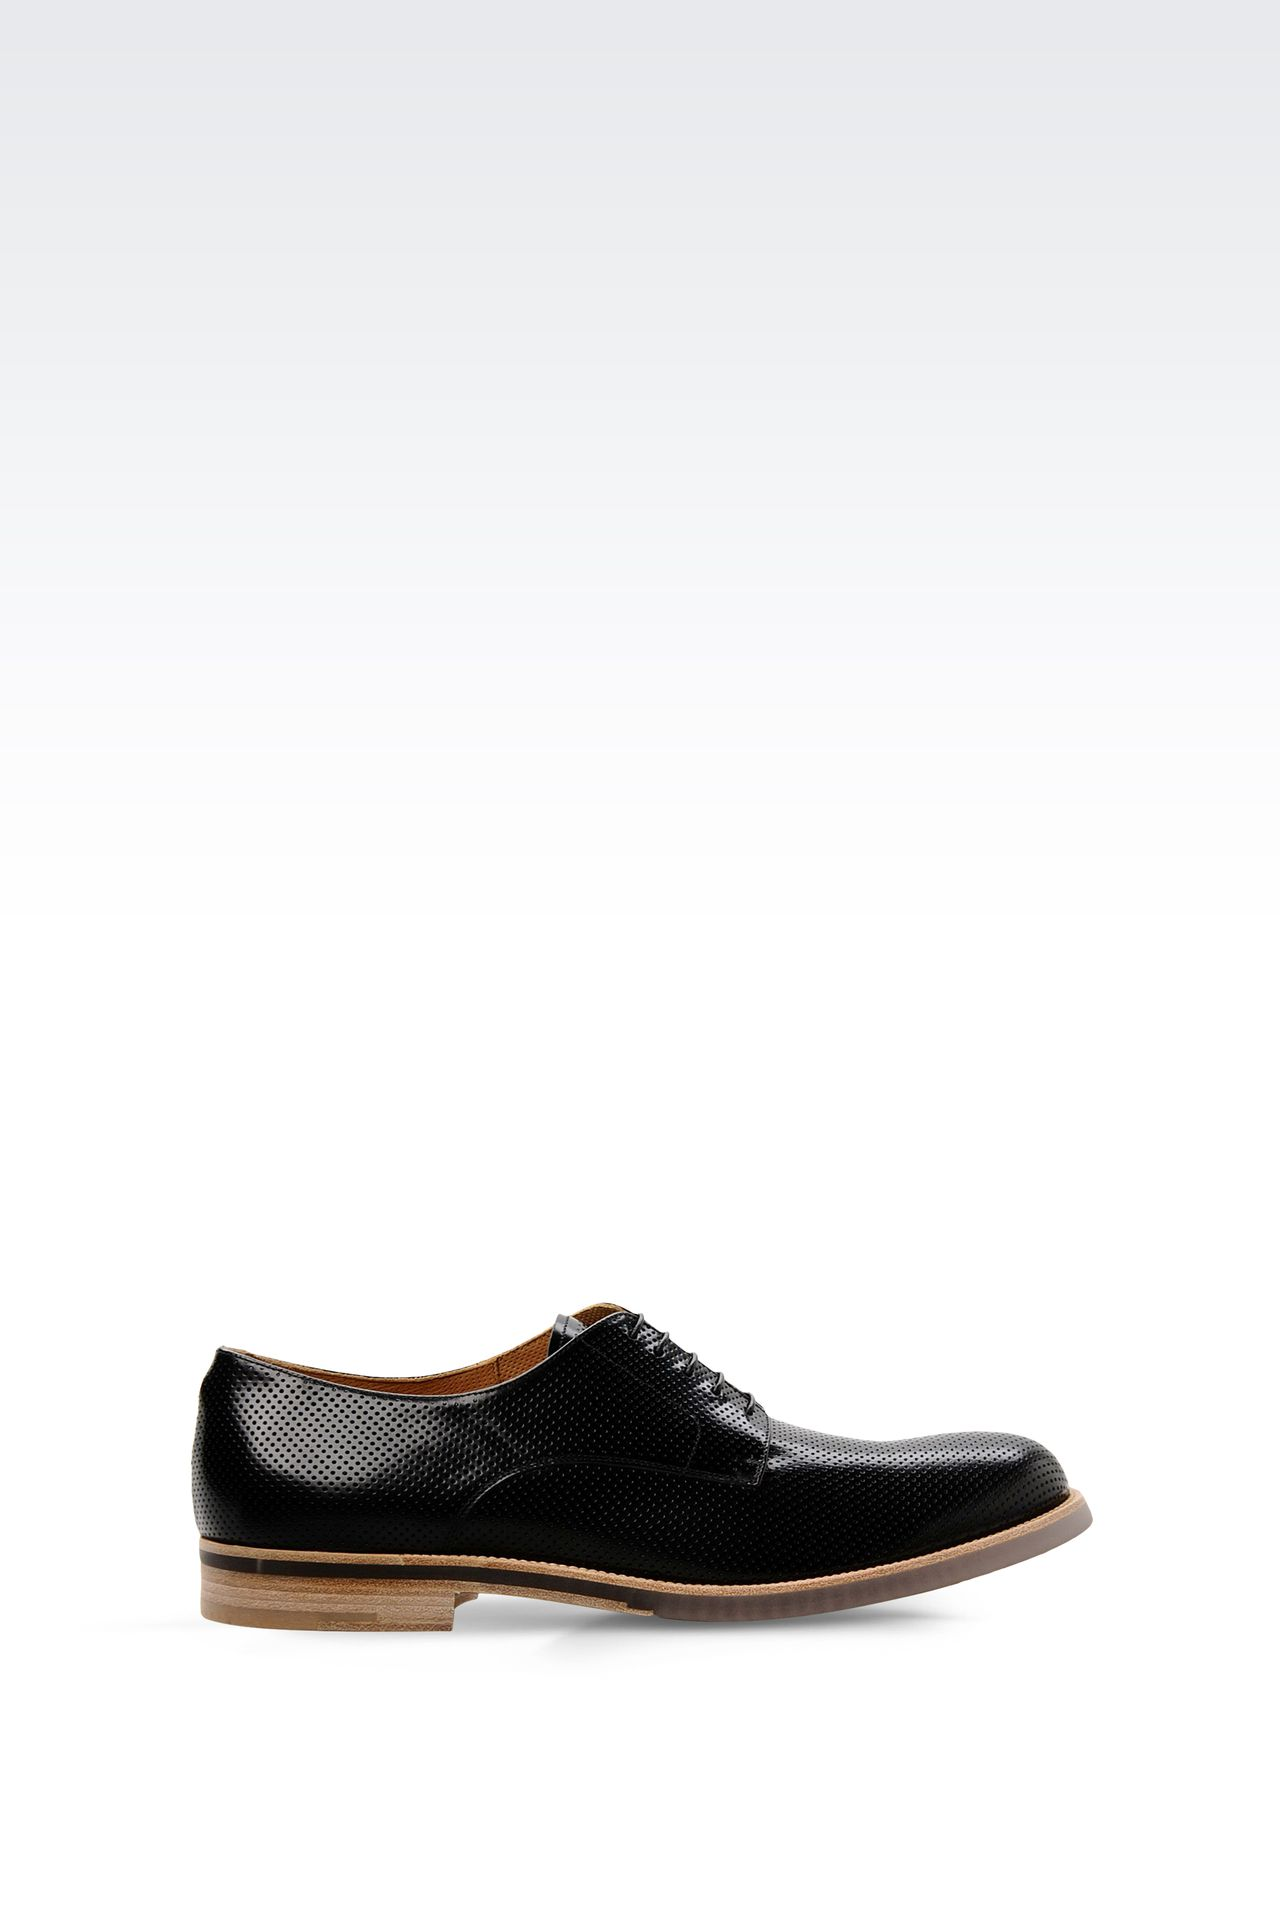 DERBY SHOE IN MICRO PERFORATED LEATHER: Lace-up shoes Men by Armani - 0